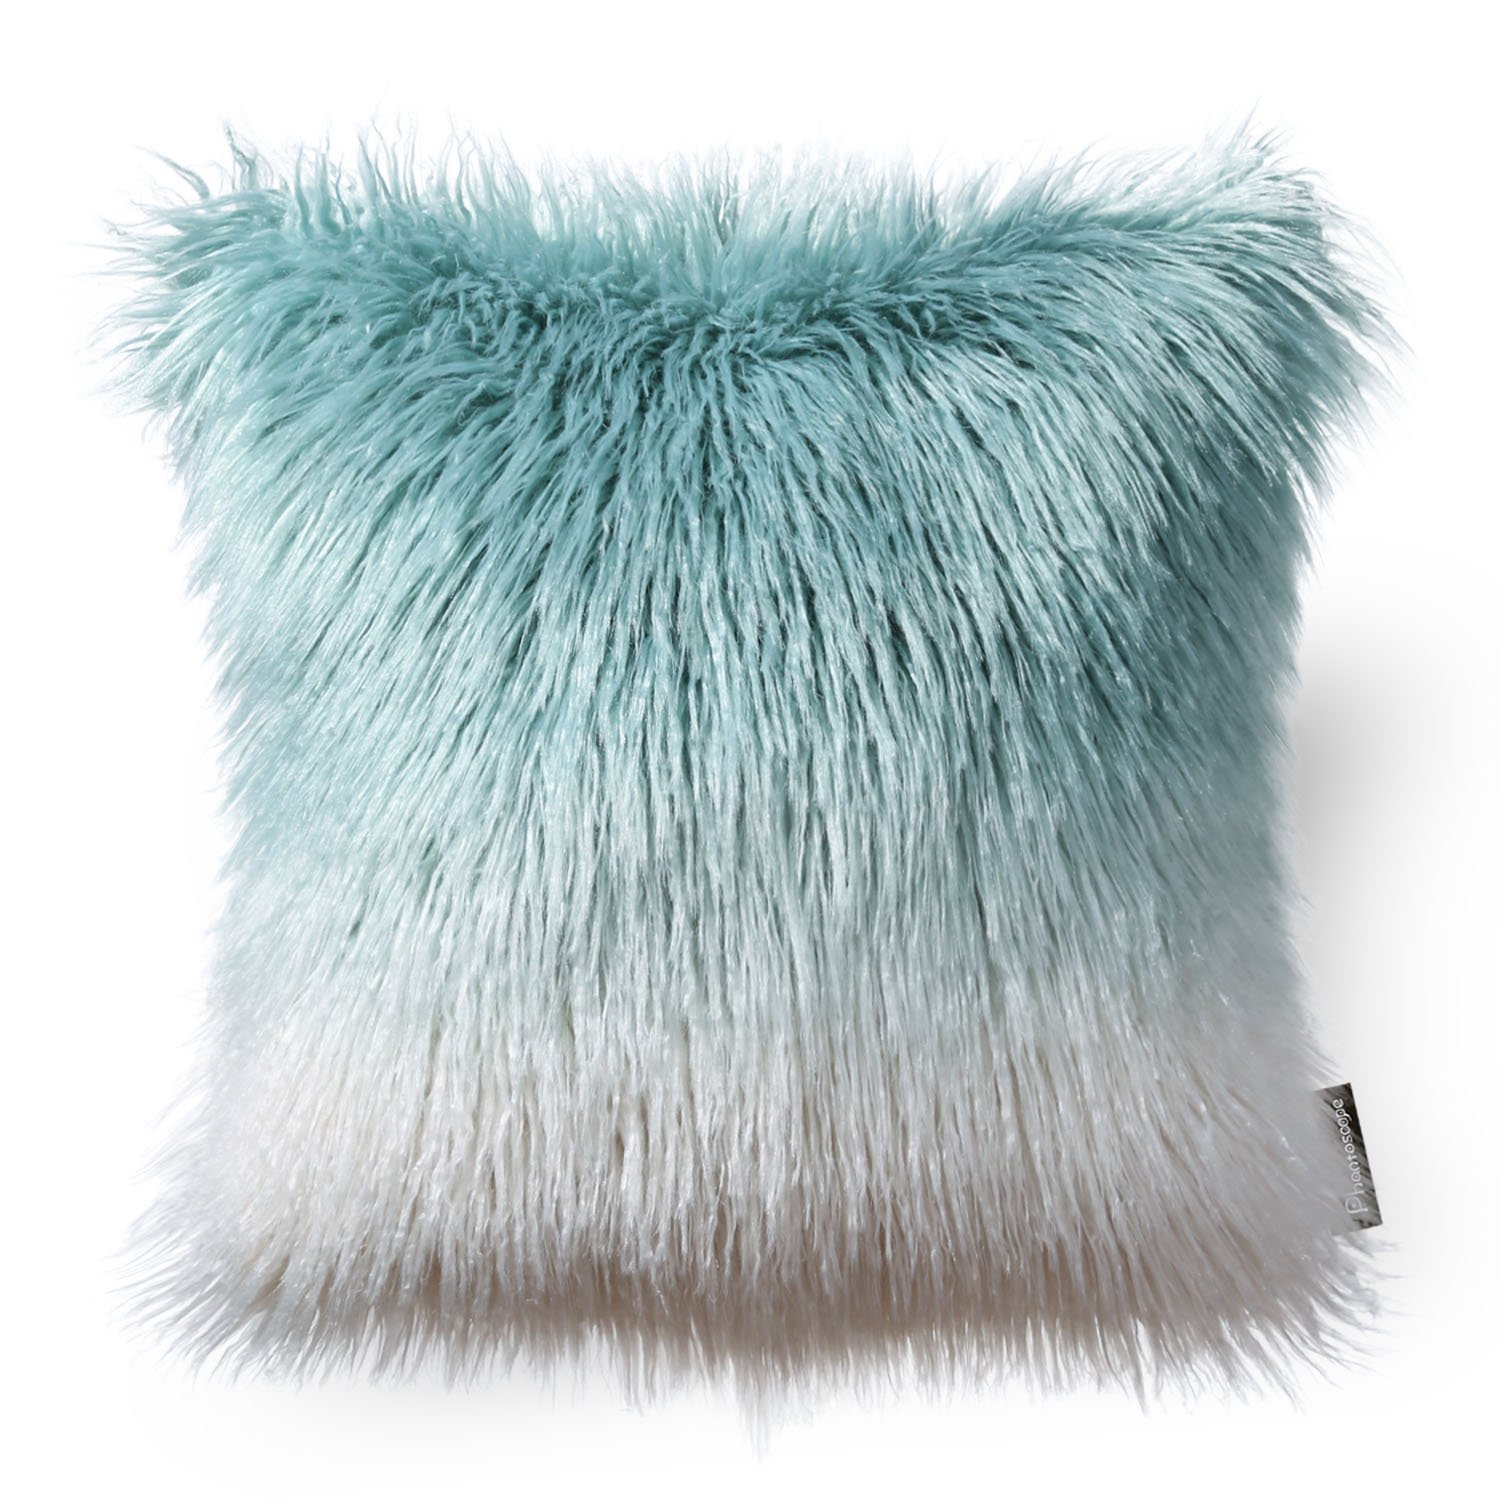 Phantoscope Decorative New Luxury Series Merino Style Multiple Color Beige Fur Throw Pillow Case Cushion Cover 18inch x 18inch